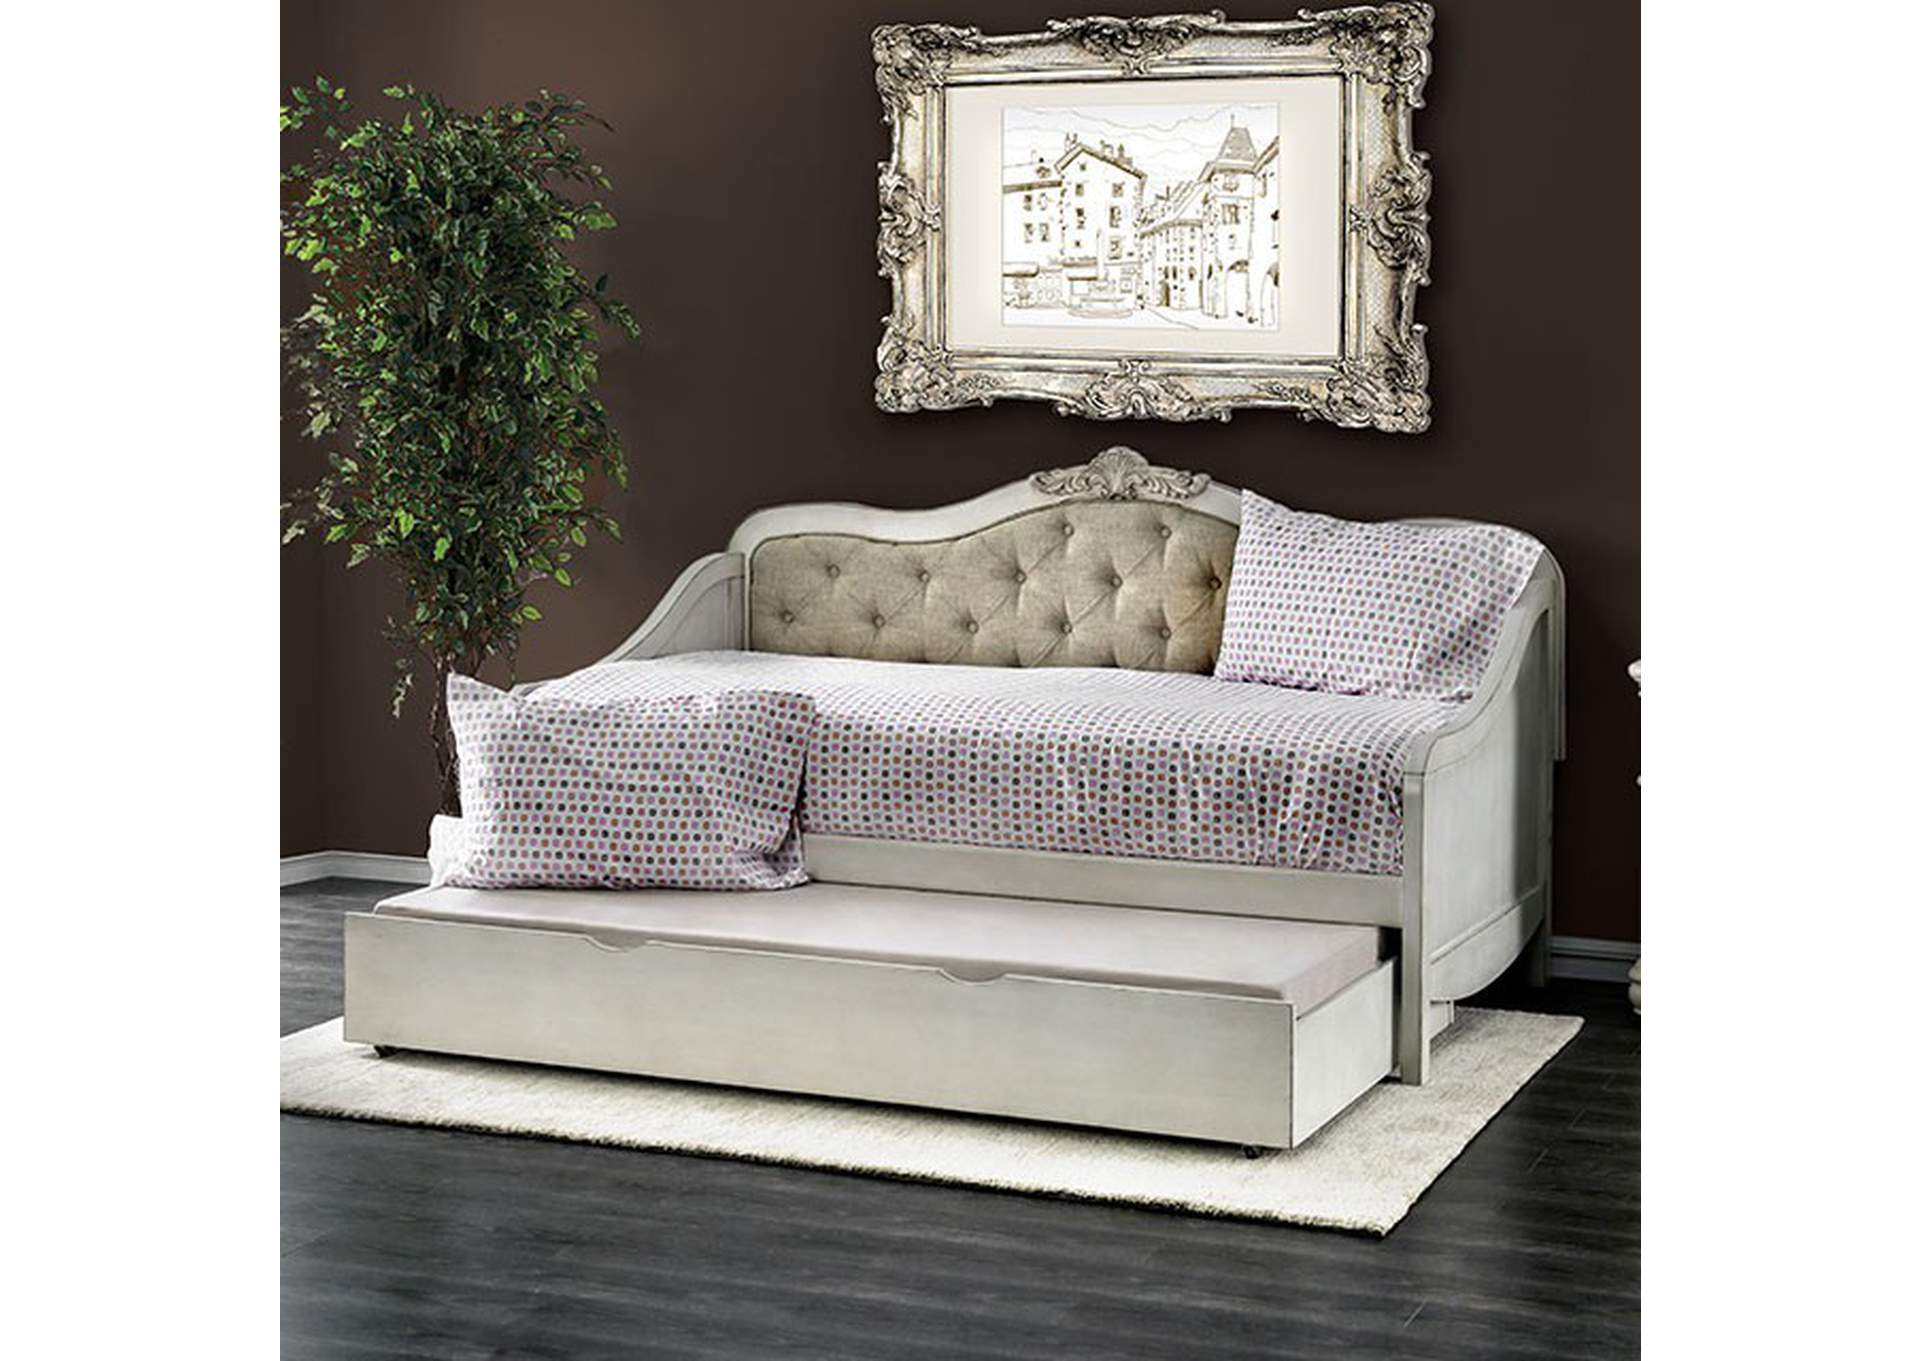 Sebastianne White Daybed,Furniture of America